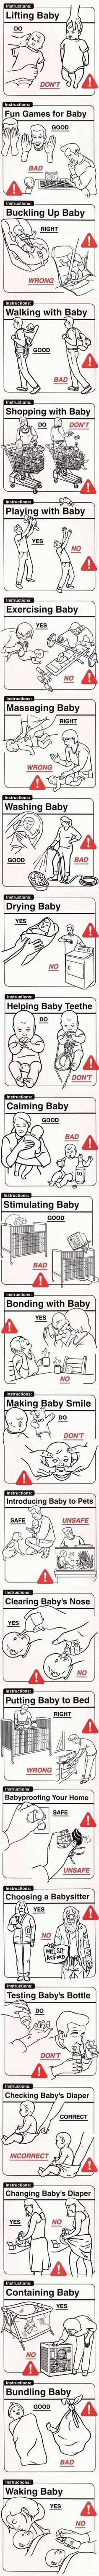 Baby Do's and Don'ts - Excellent parenting advice...